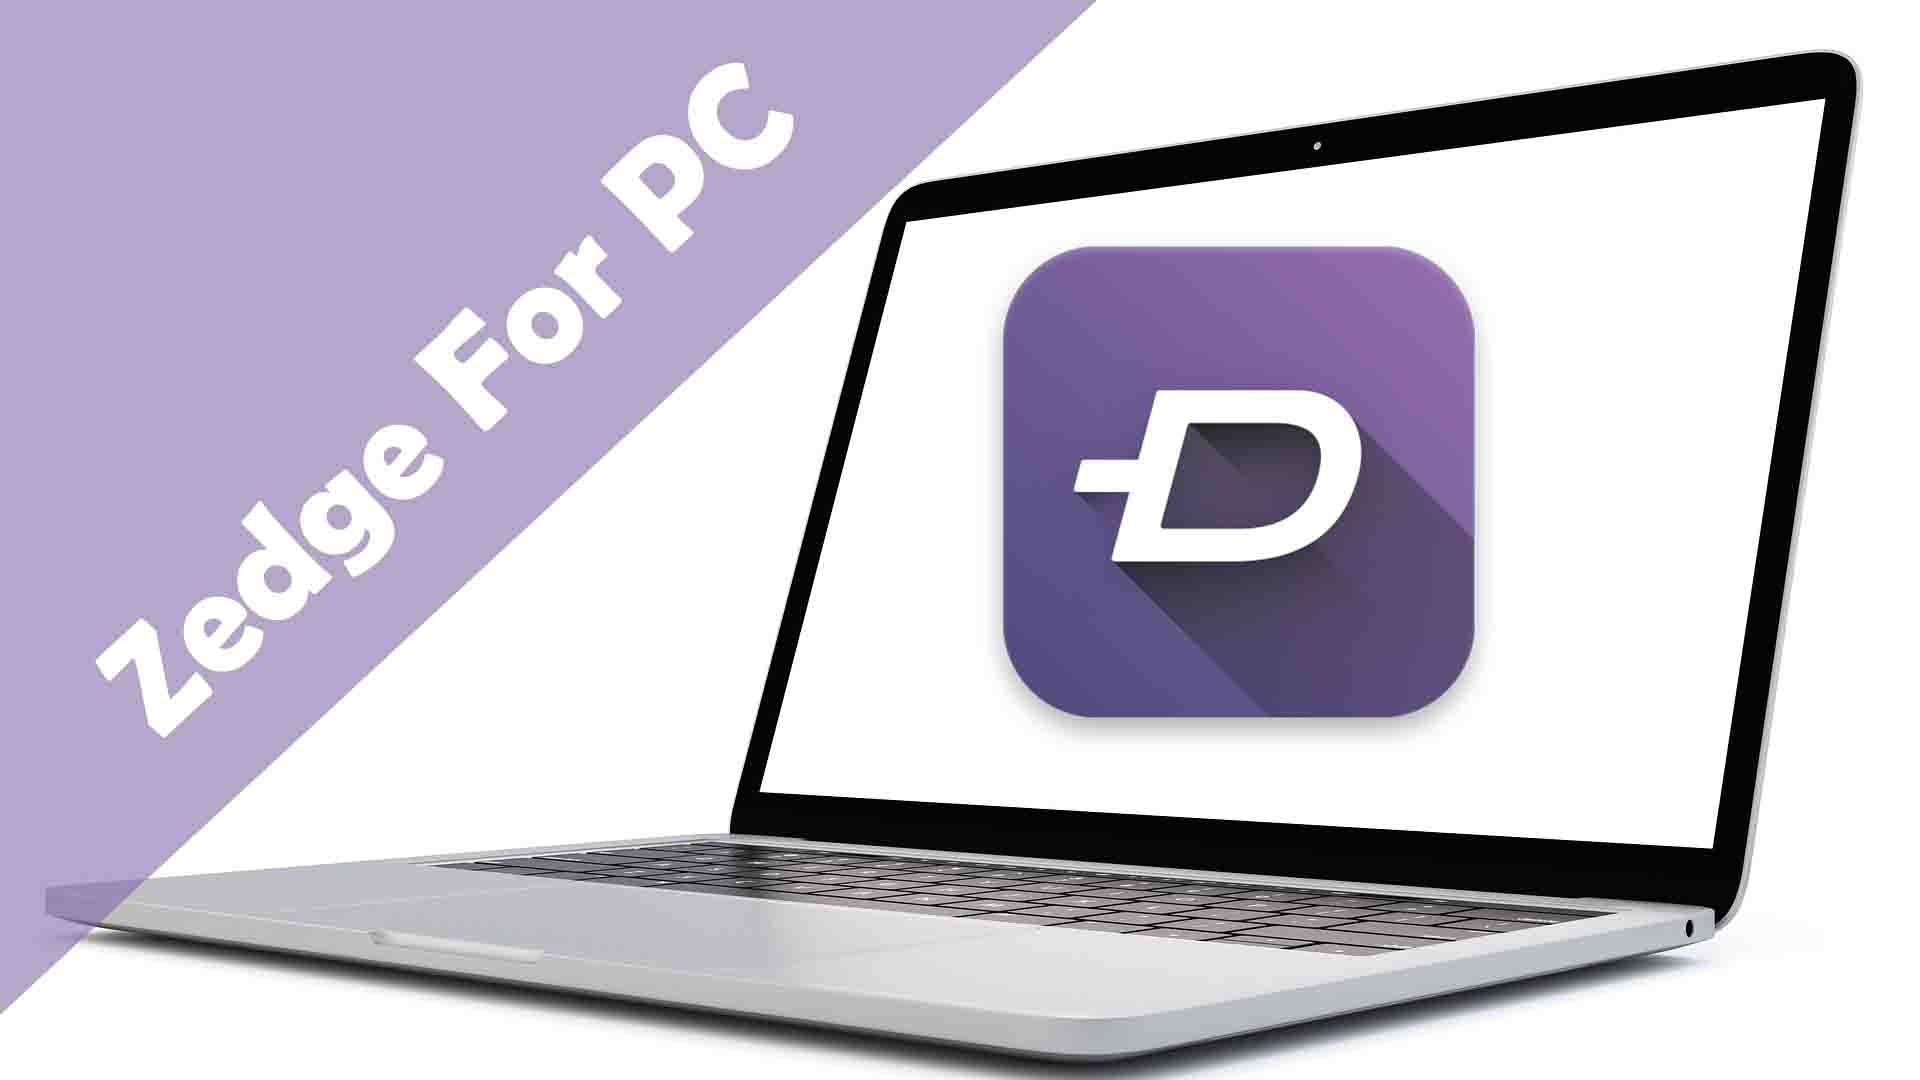 Zedge For PC Download (Windows 10/8/7 and Mac Mac